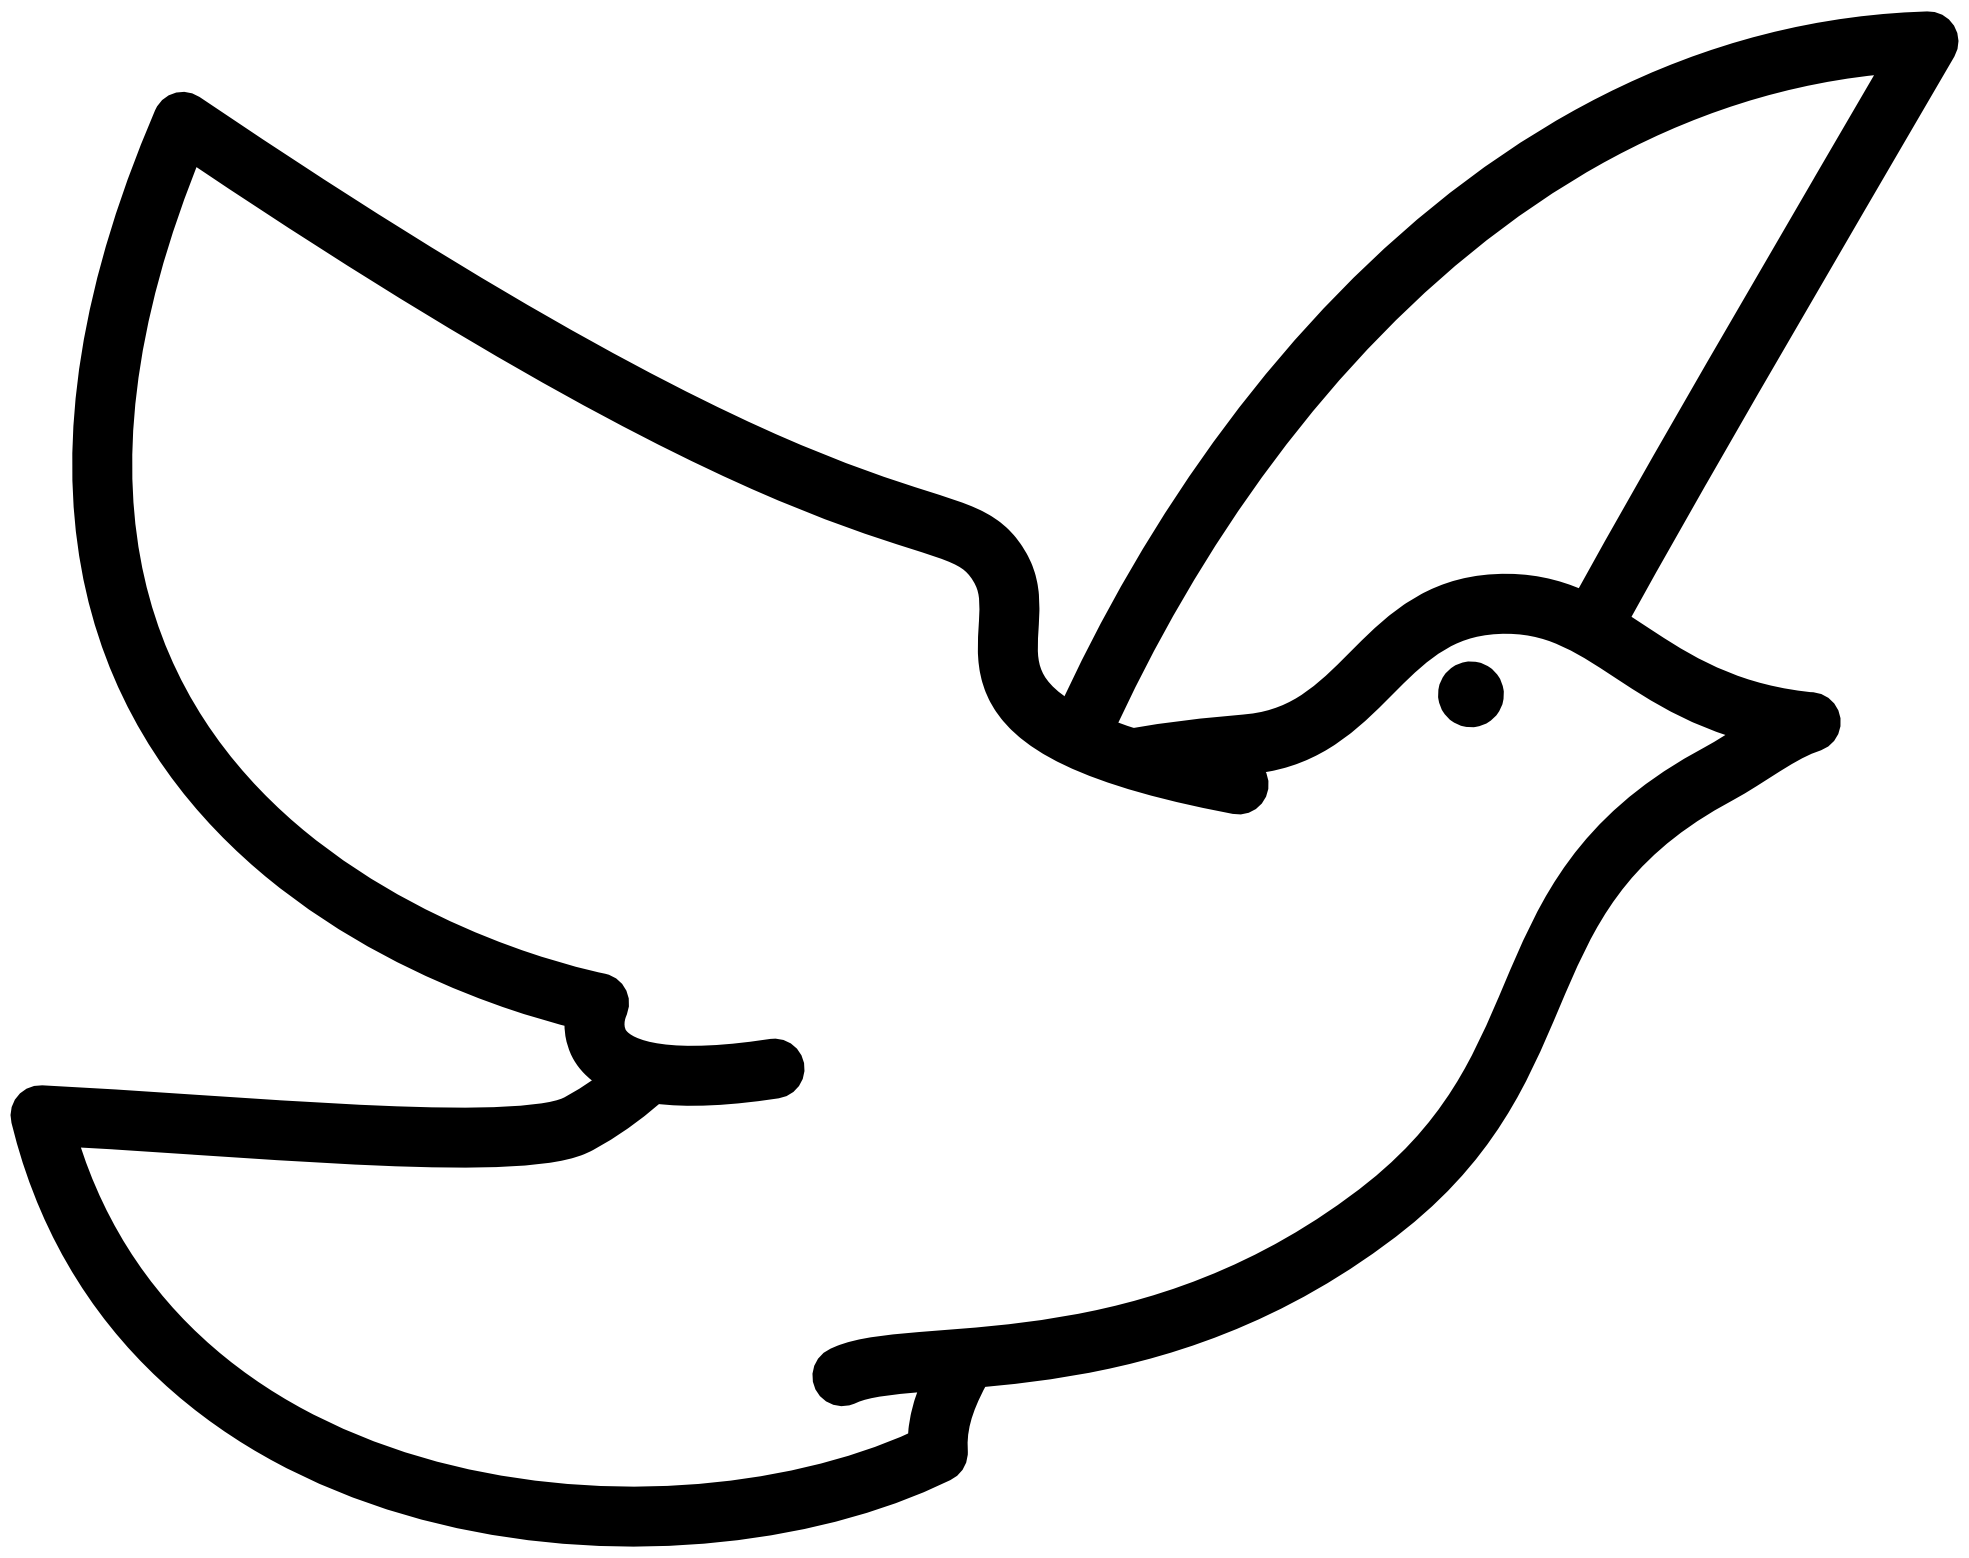 Fly Clipart Black And White Black And White Bird Flying Drawingdove